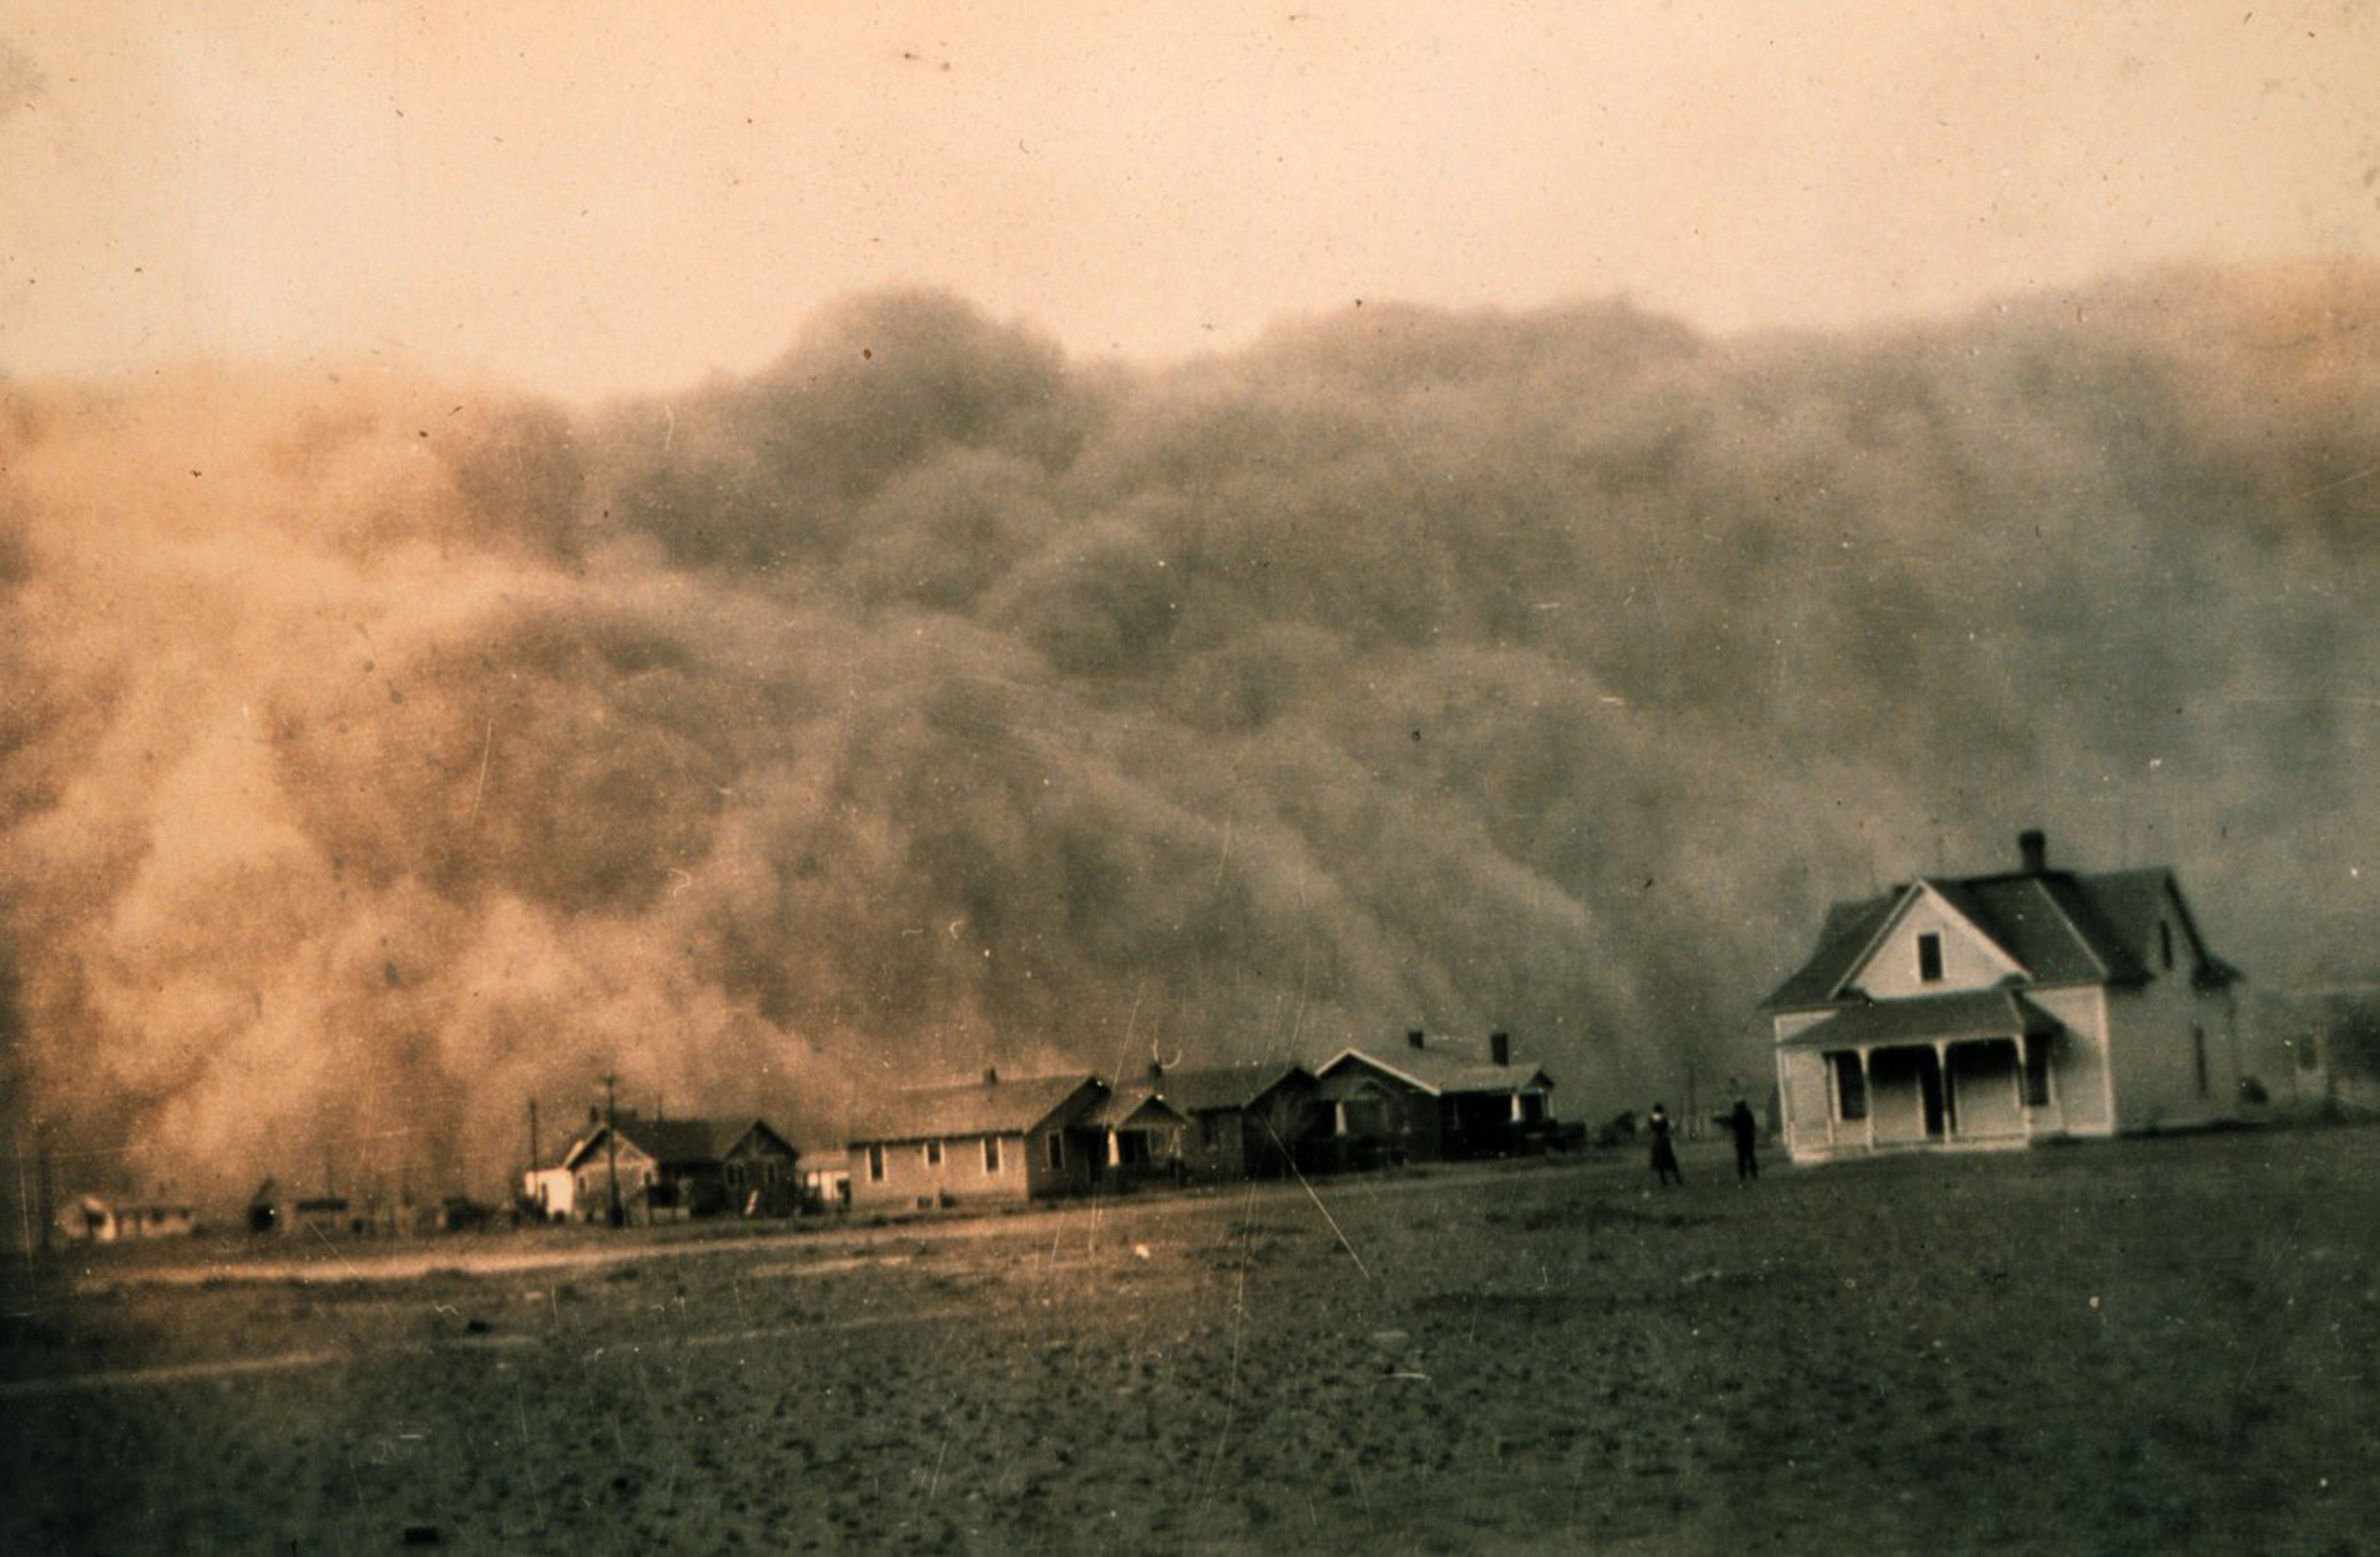 Stock Photo of a Dust Storm Approaching Stratford, Texas, April.